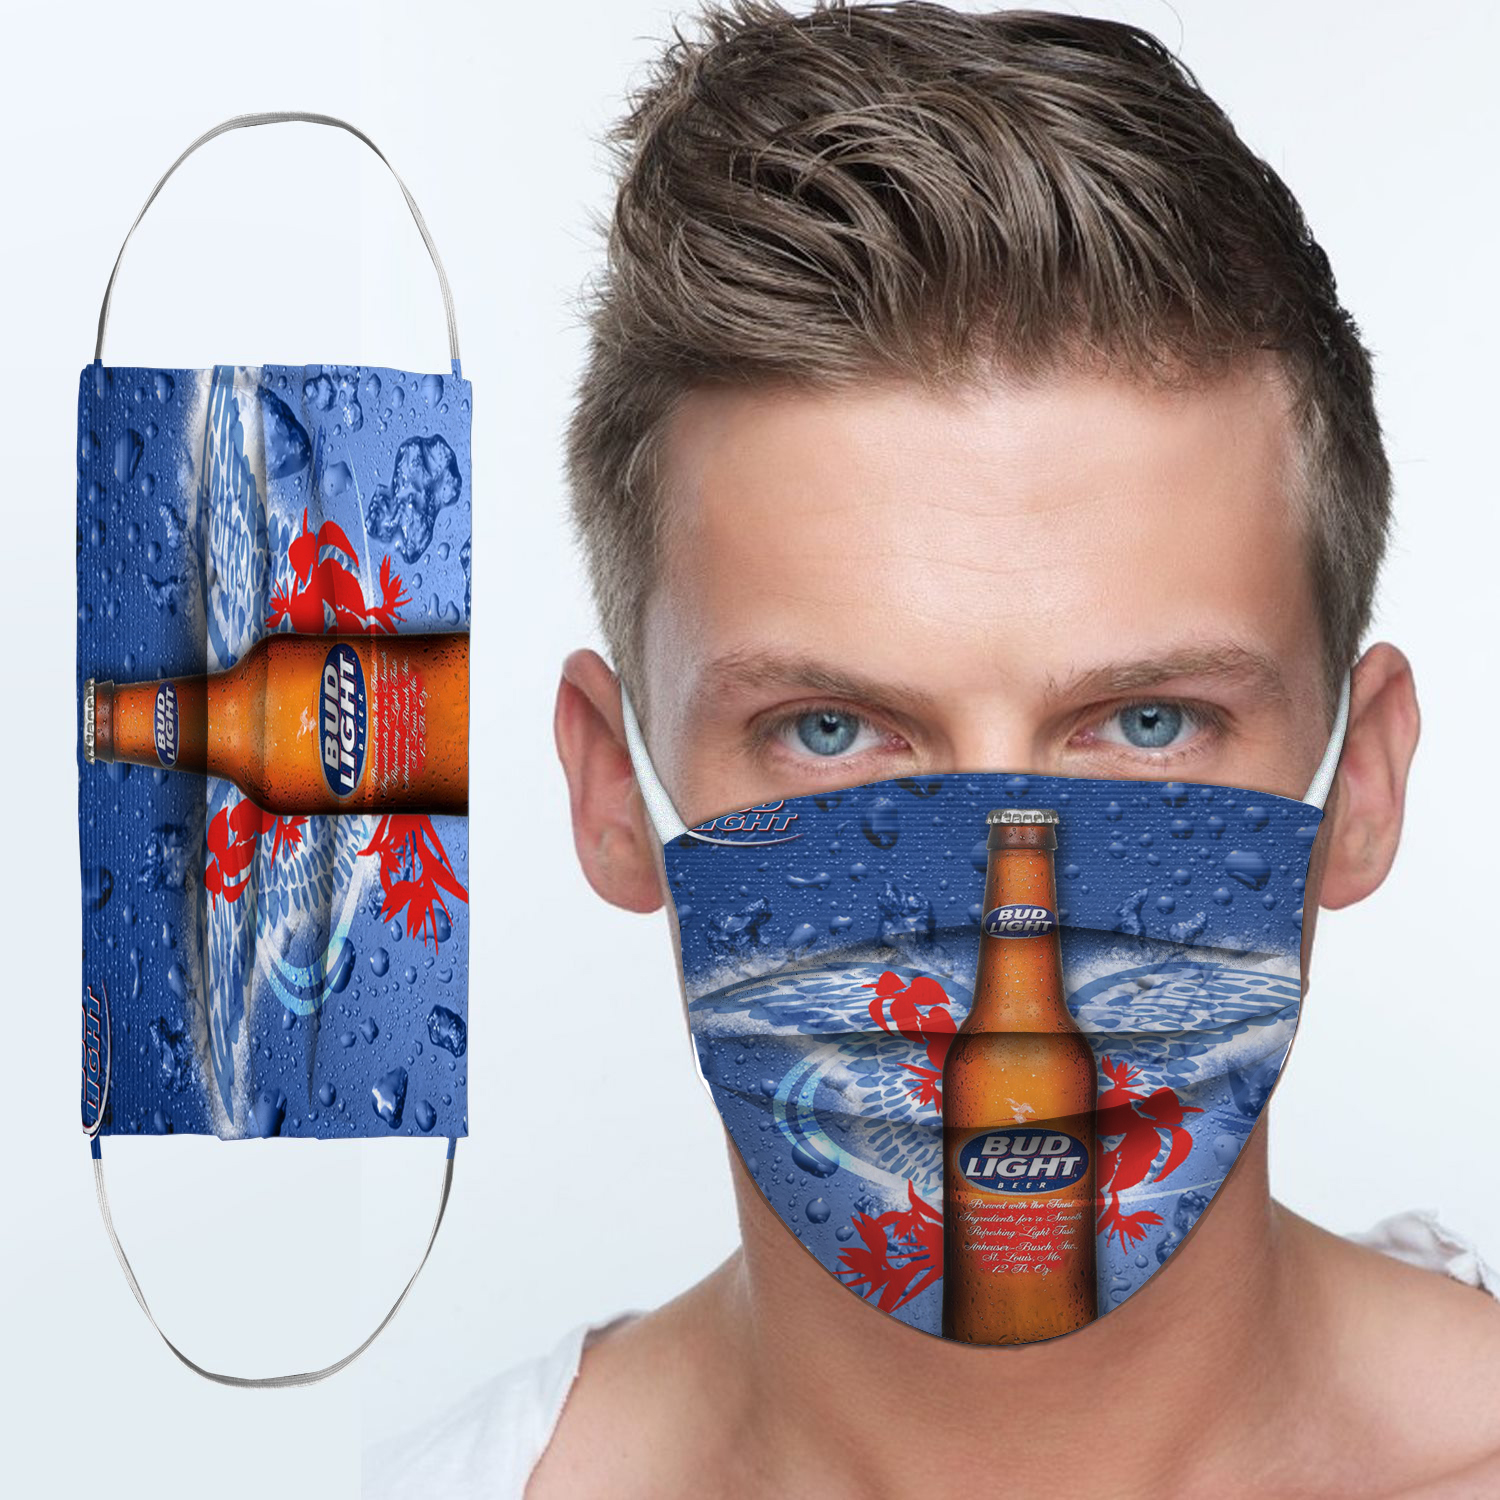 Bud light best light anti-dust cotton face mask 1